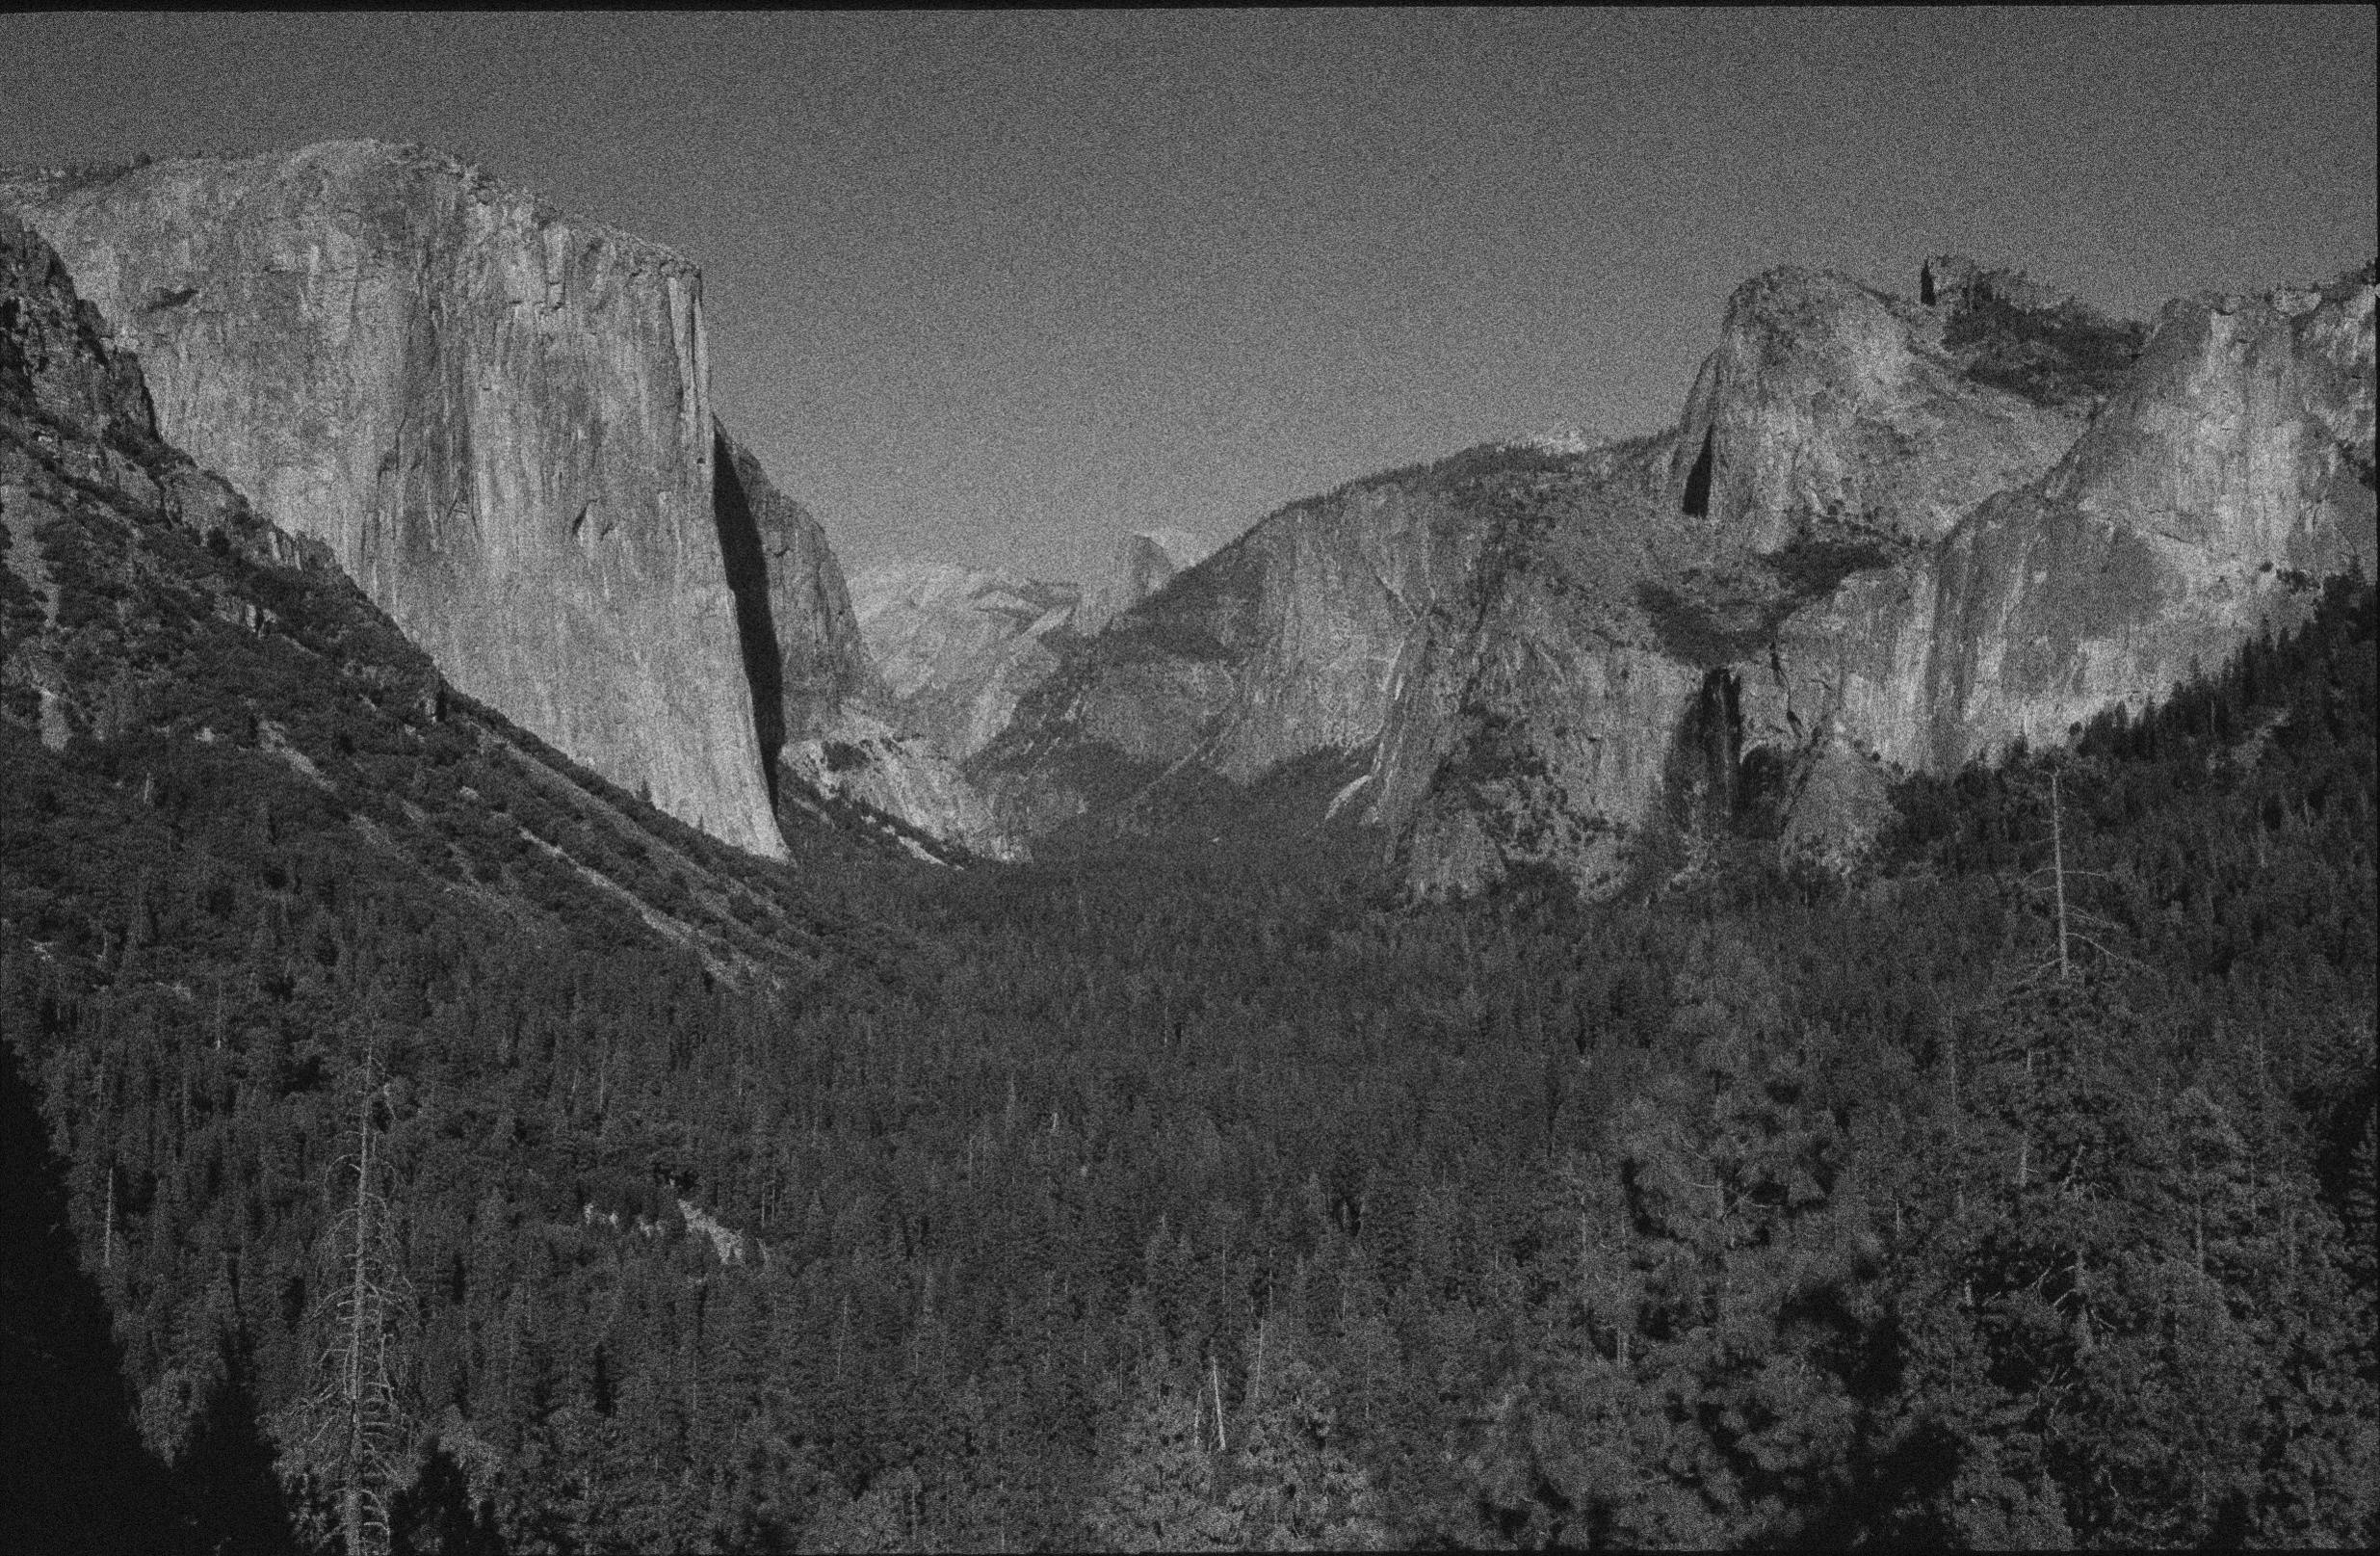 YosemiteValley1994.jpg